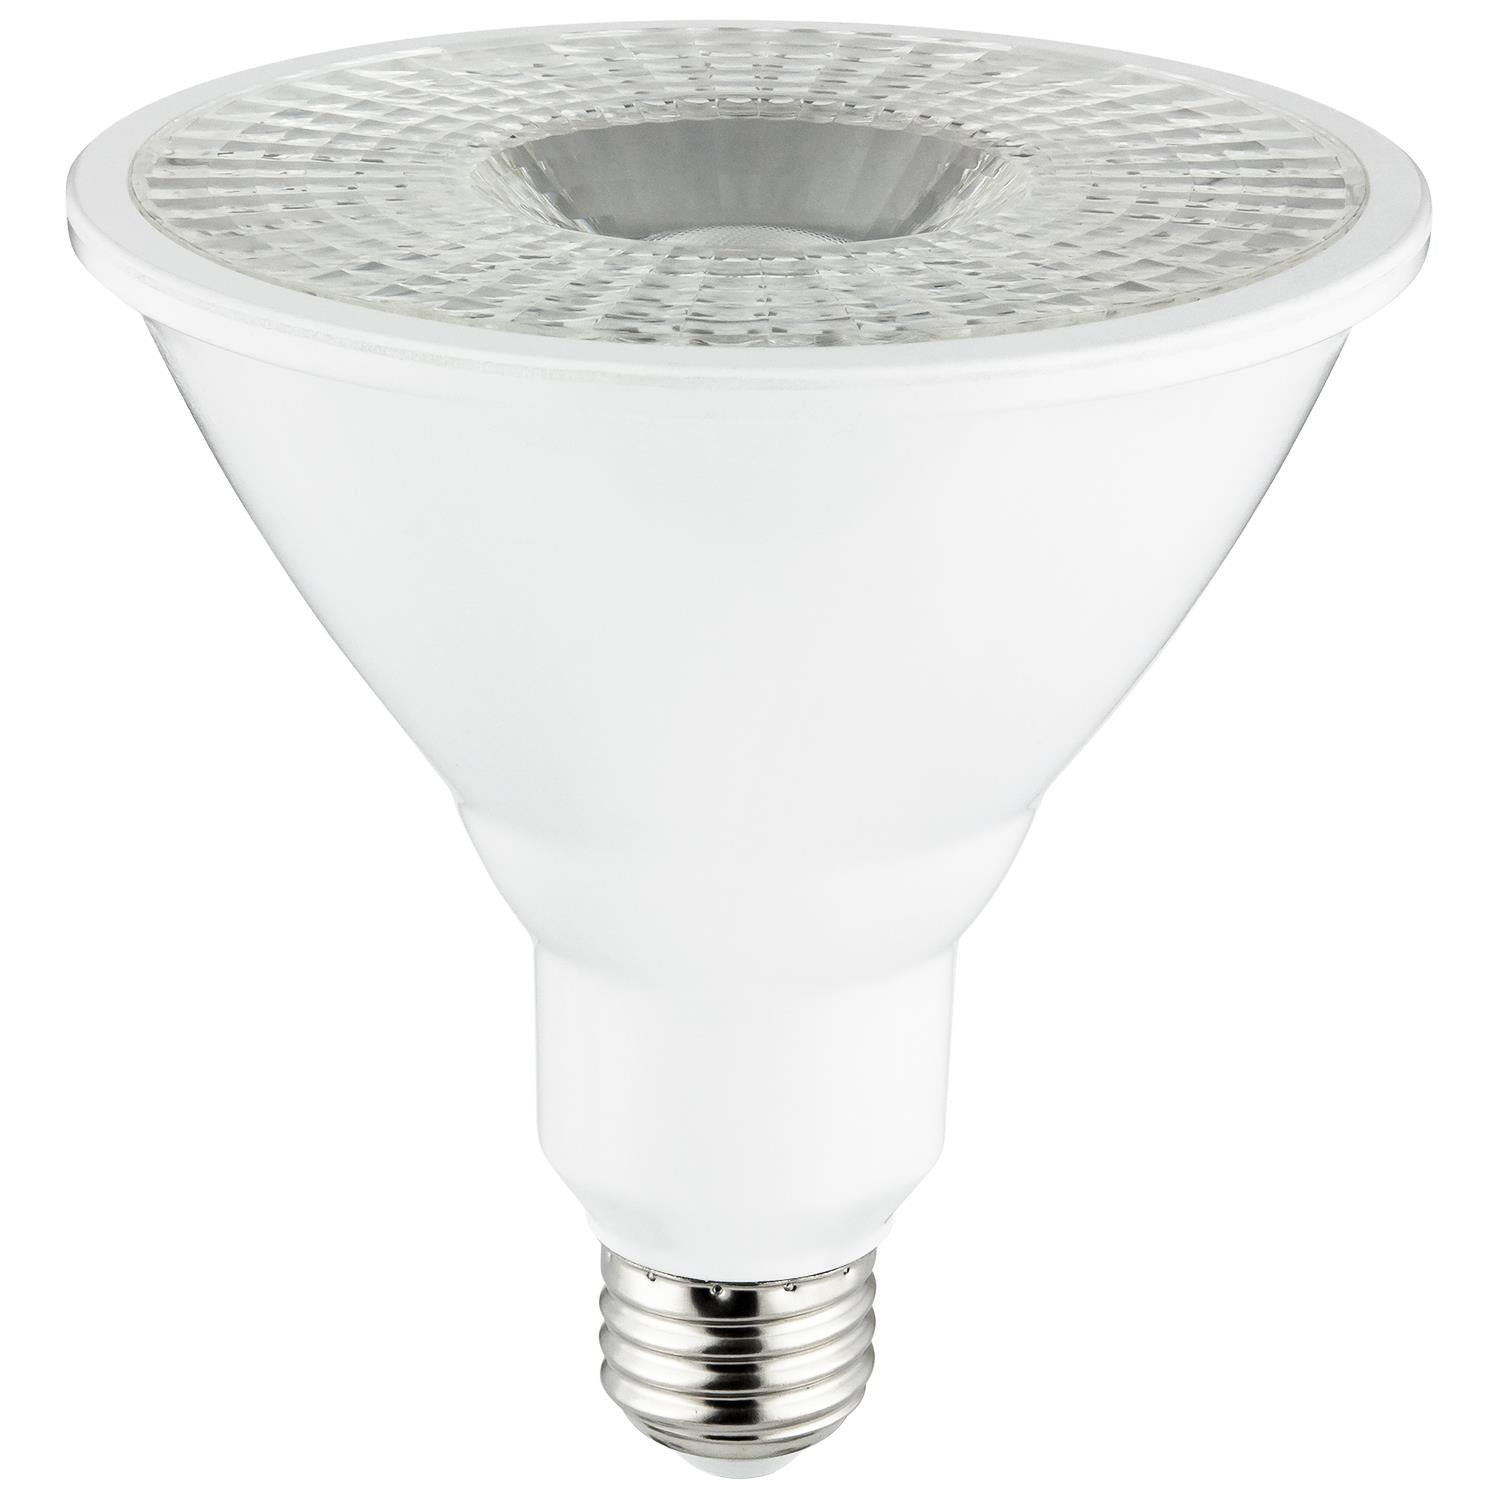 SUNLITE 18w LED PAR38 Flood 35 Lamp E26 Medium Base 5000K Super White